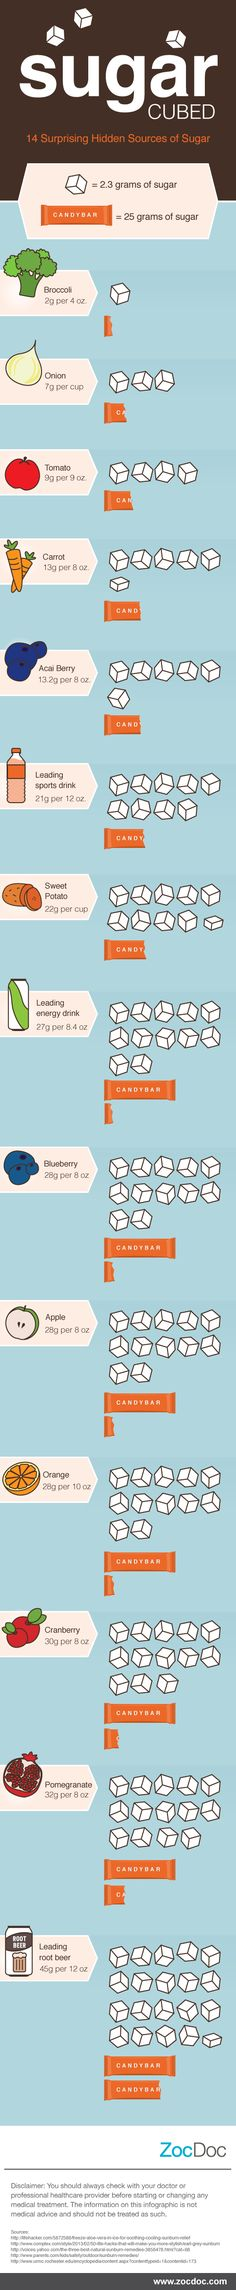 Sugars are a form of carbohydrate found in a variety of foods, including fruits and vegetables. We've used regular sugar cubes to show how the sugar